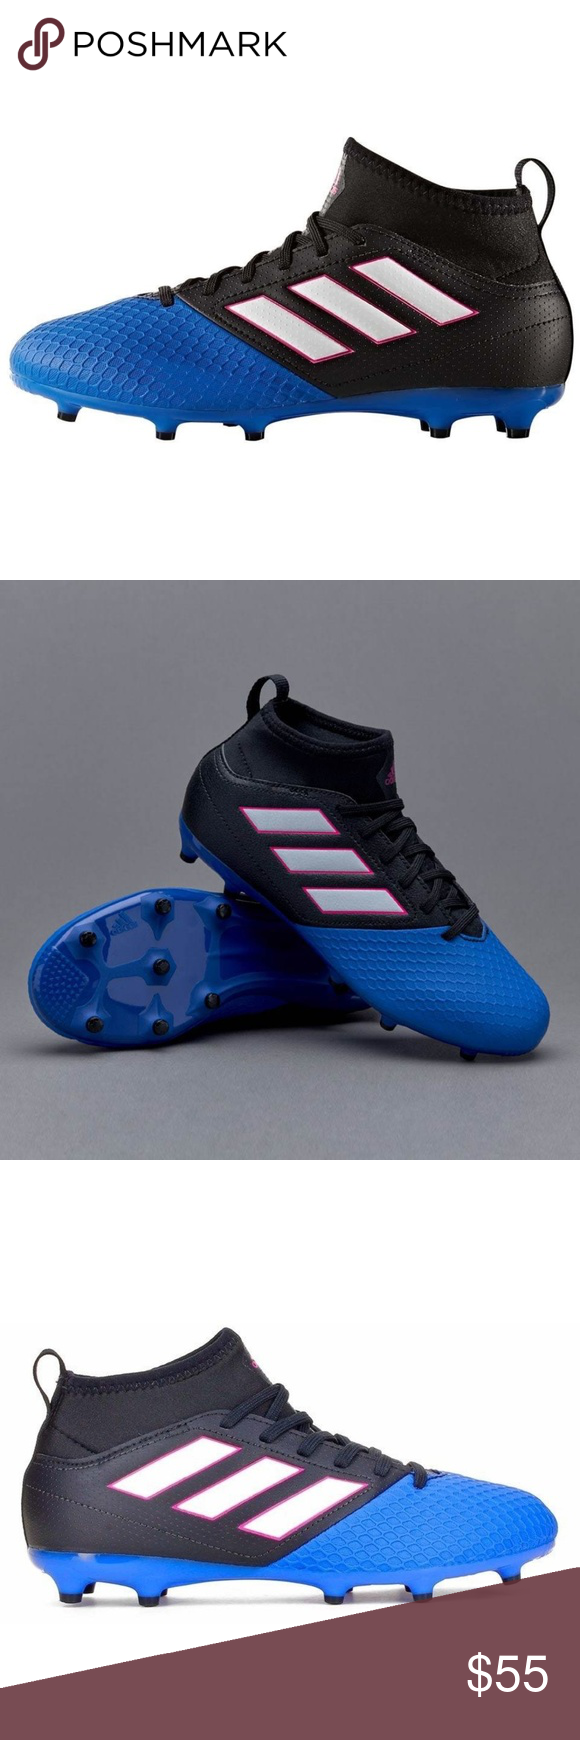 b716923dd3c Adidas Kids Sizes 4 Ace Soccer Cleats NEW Adidas Ace 17.3 FG J Primemesh  Firm Ground Cleats Soccer Shoes BA9234 Youth Size 4 and 4.5 available adidas  Shoes